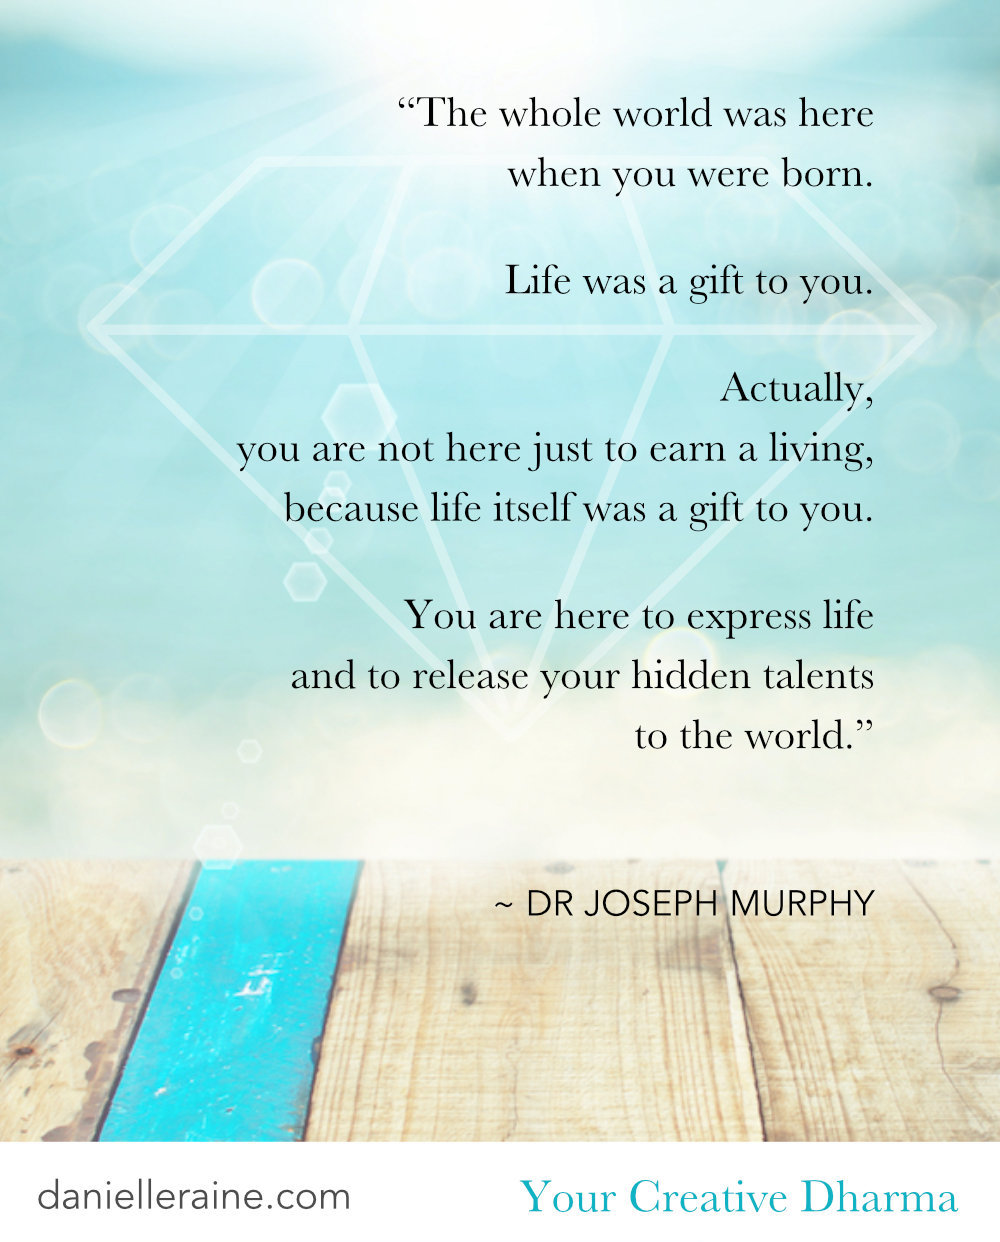 joseph murphy quote your creative dharma pin